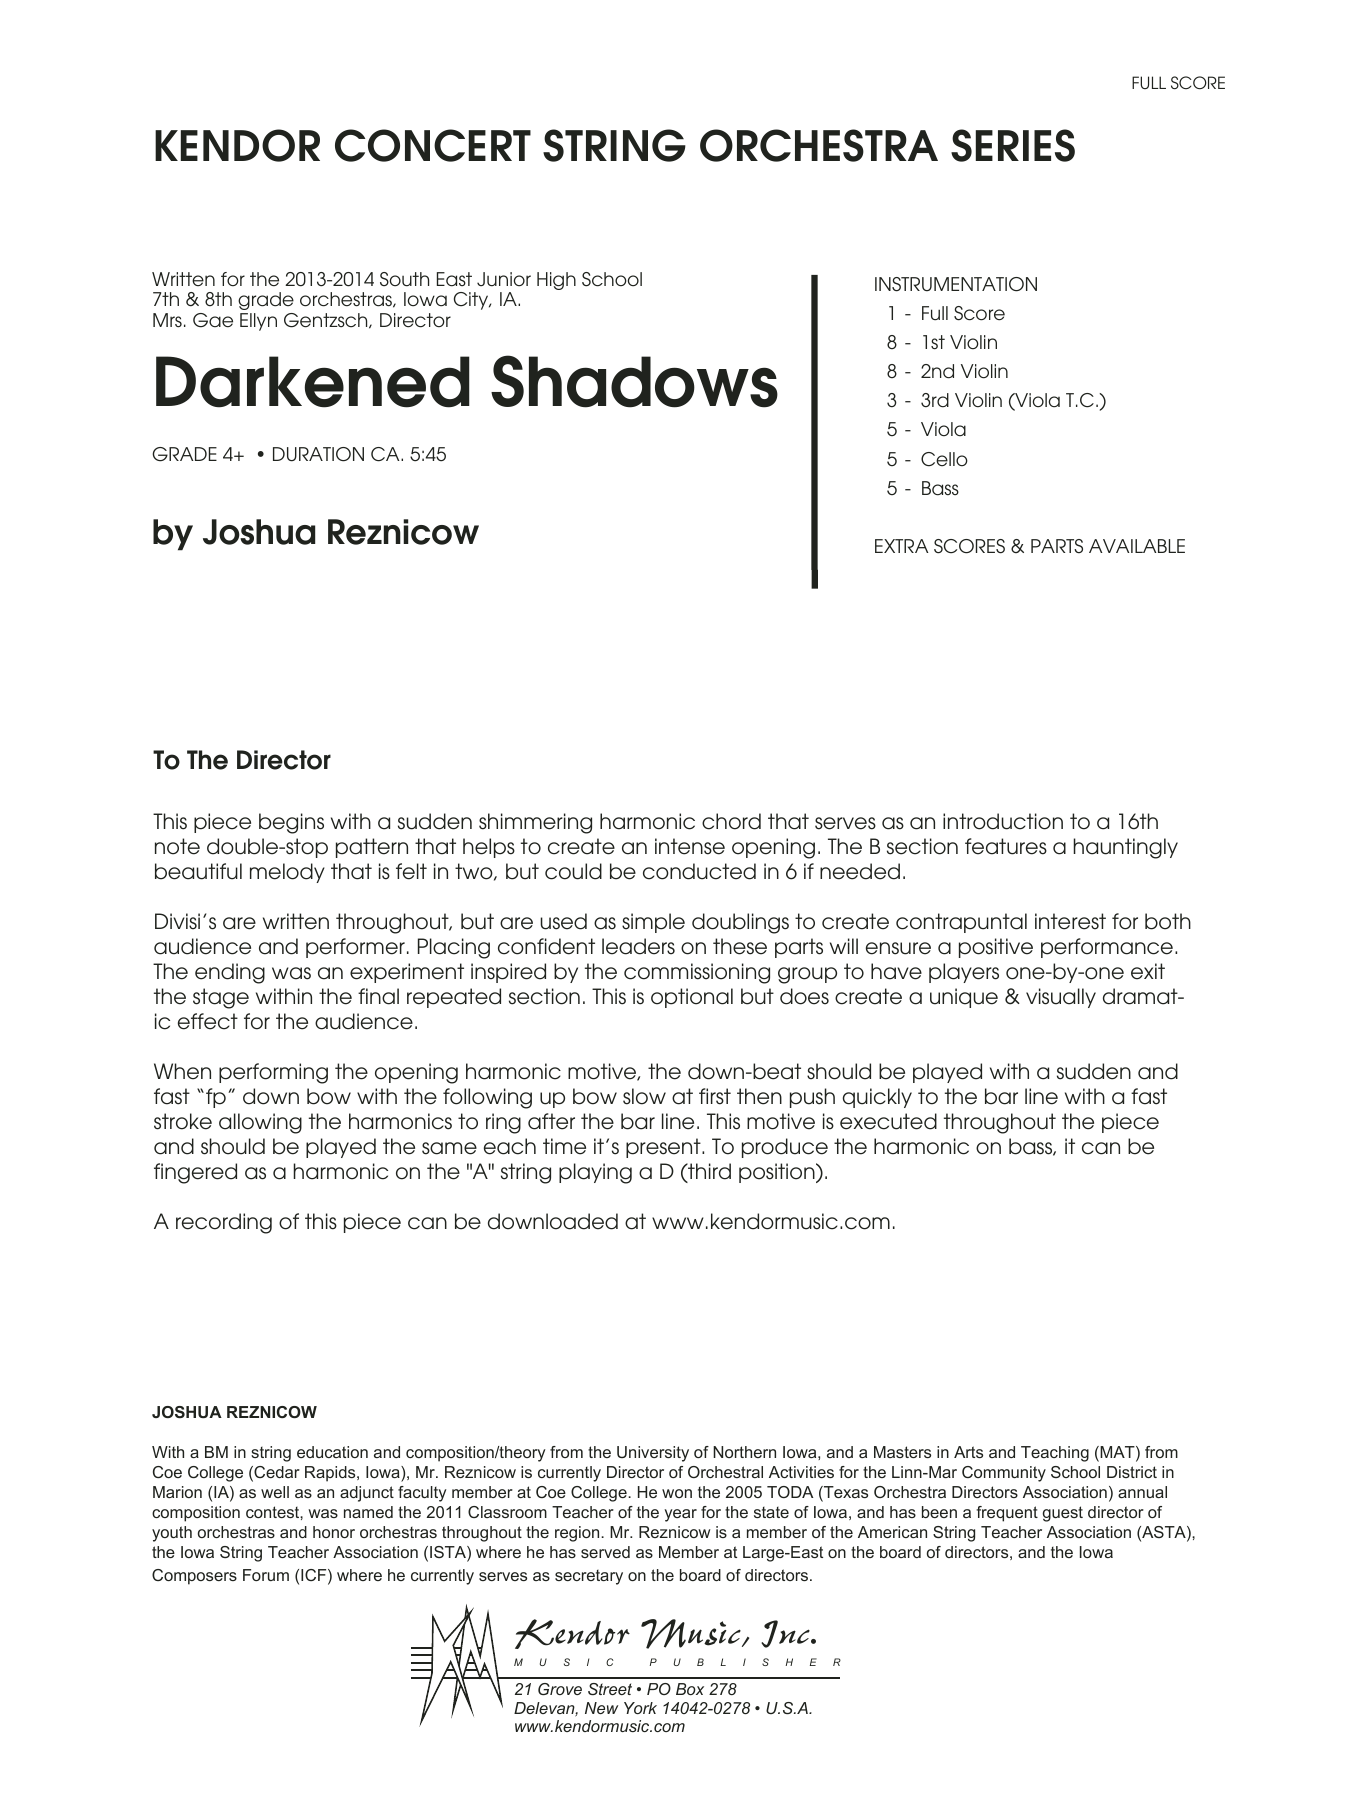 Joshue Reznicow Darkened Shadows - Full Score sheet music notes and chords. Download Printable PDF.